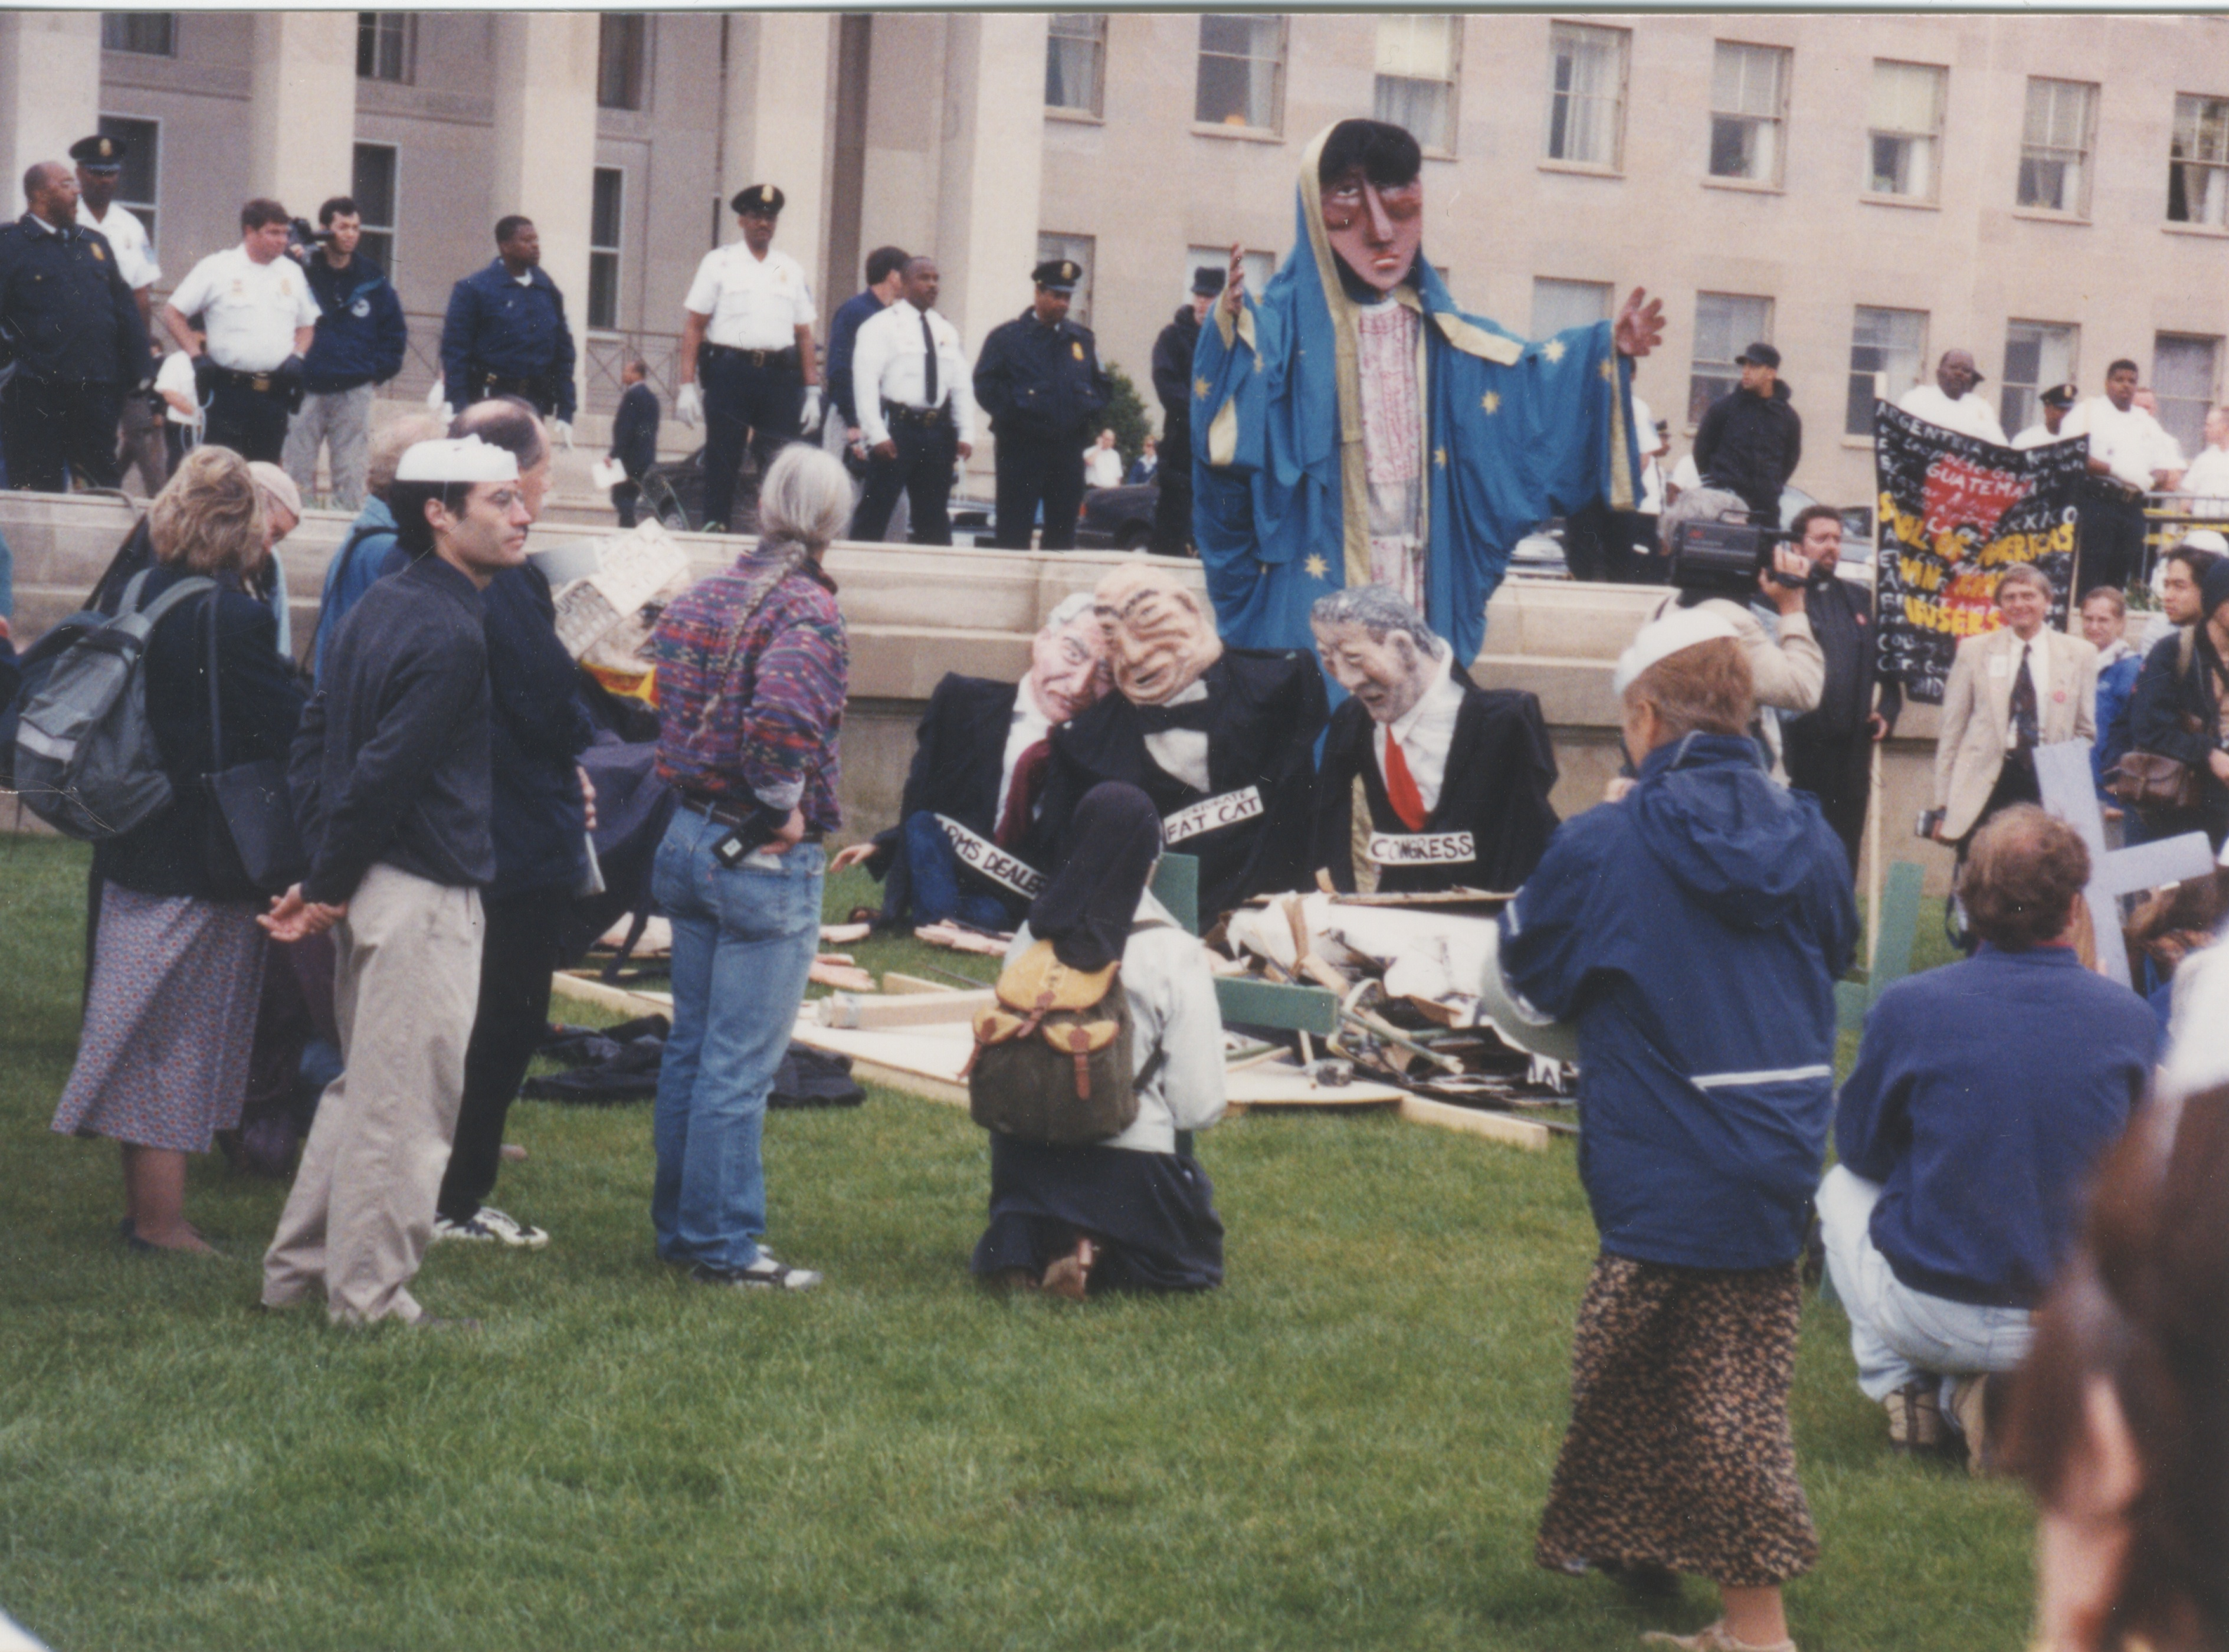 Interfaith Council for Peace and Justice: Protest Against the School of the Americas, 2000 image